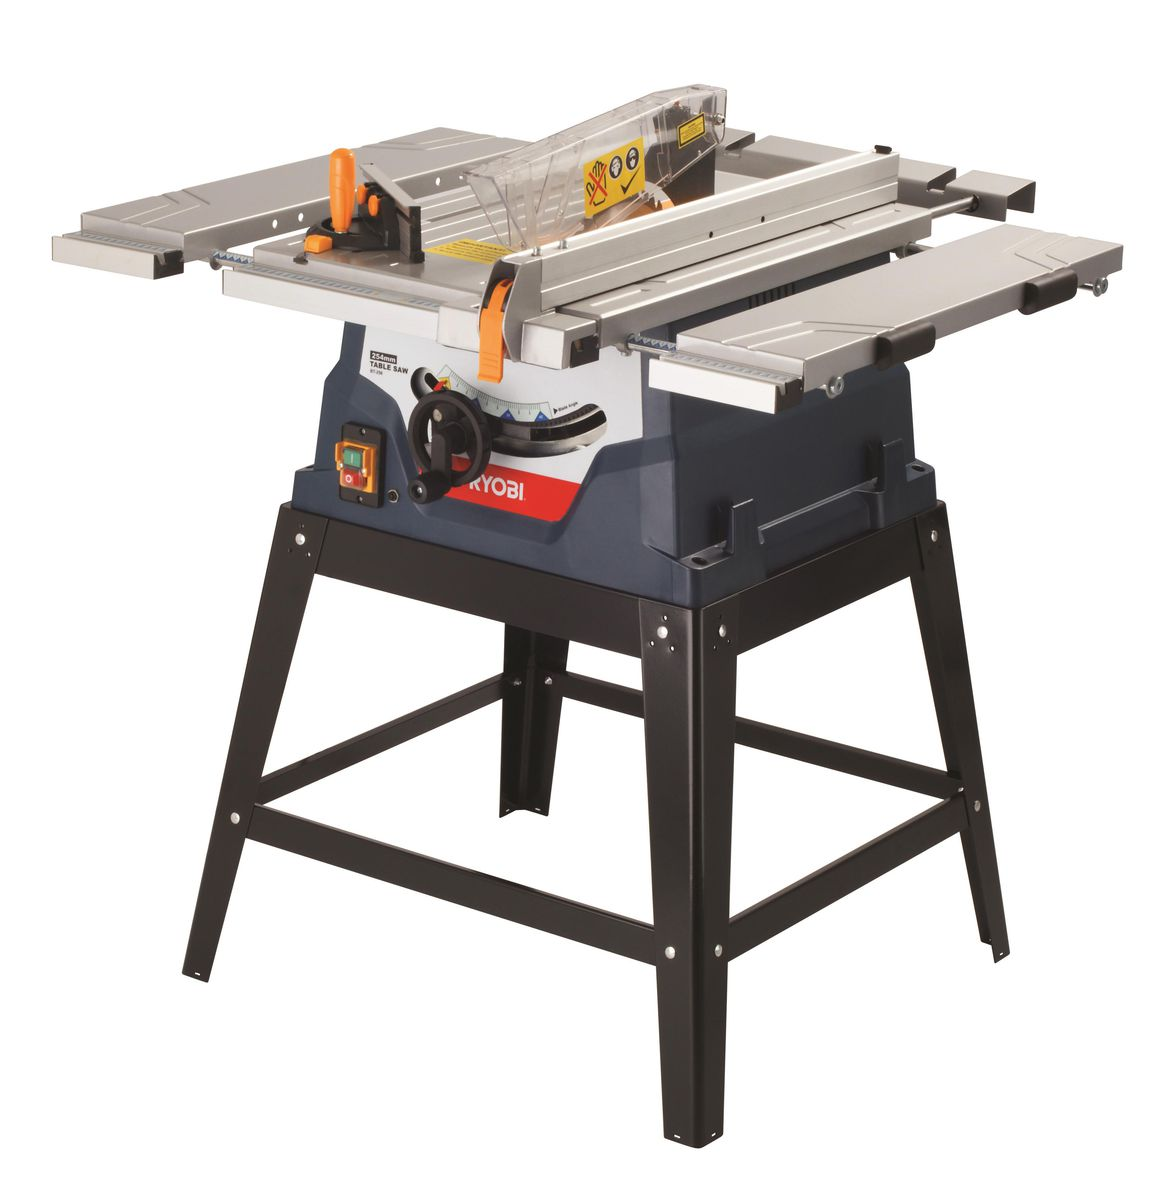 Ryobi table saw 1500 watt 254mm buy online in south africa ryobi table saw 1500 watt 254mm loading zoom greentooth Image collections